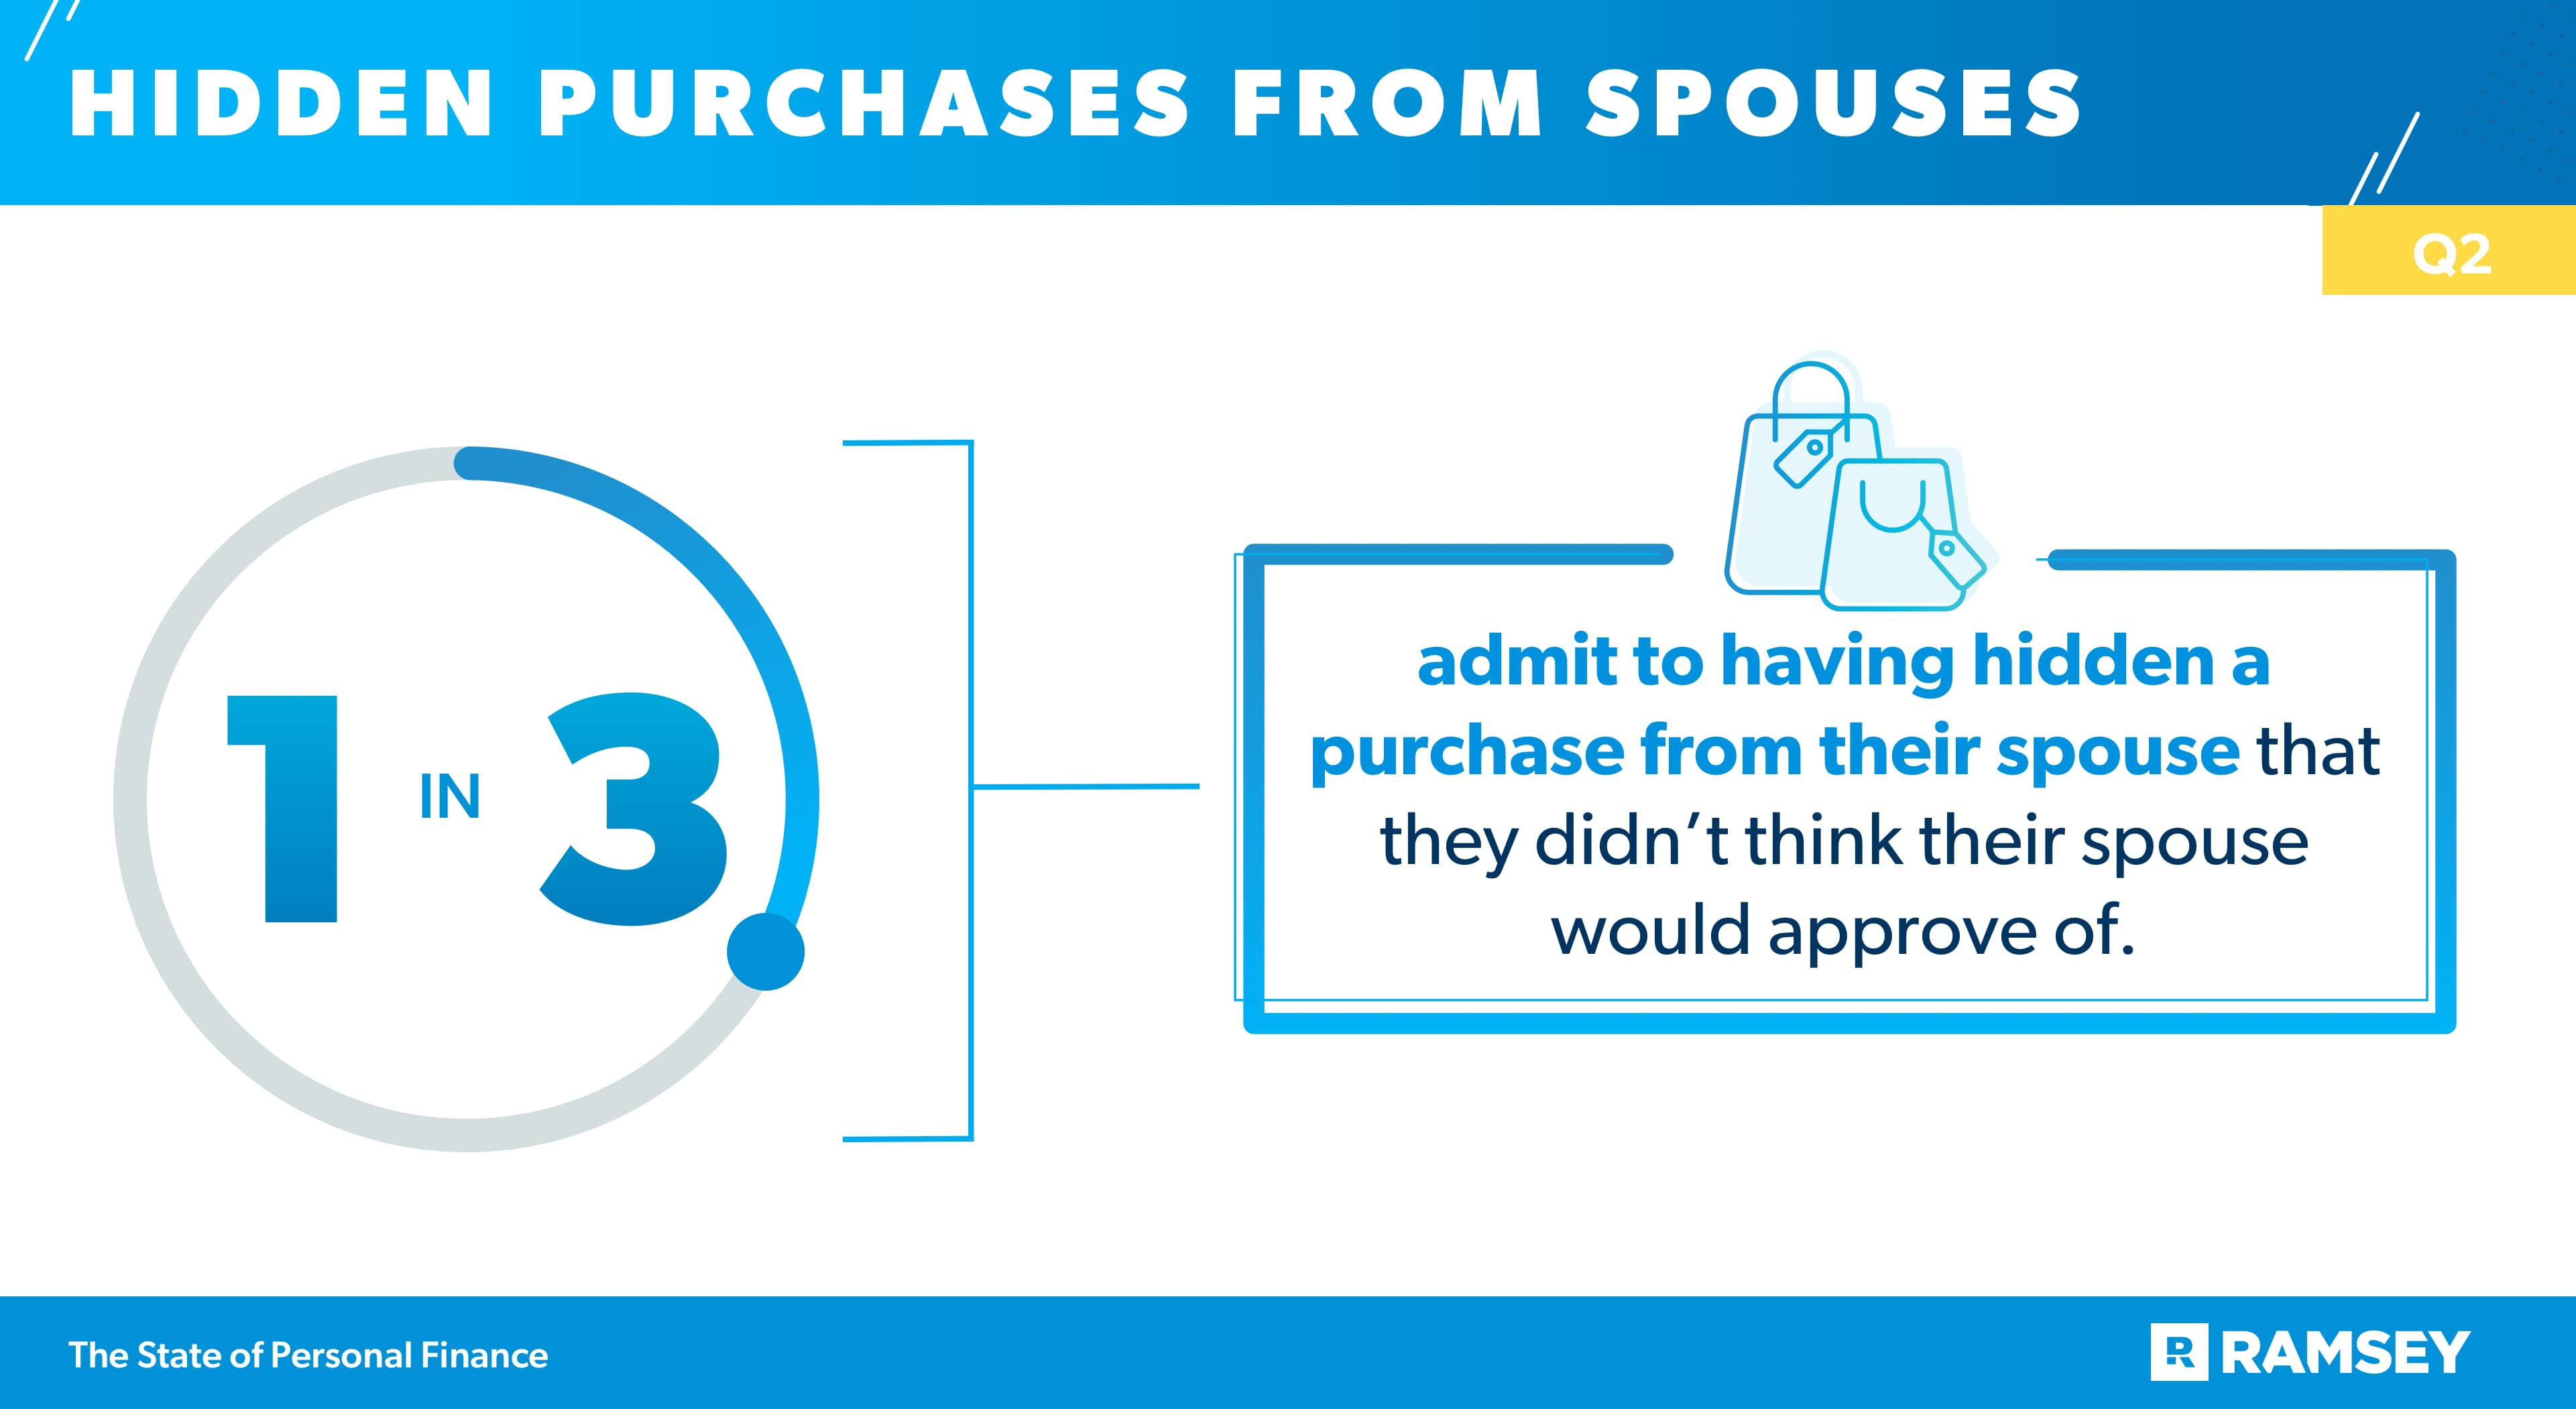 hidden purchases from spouses